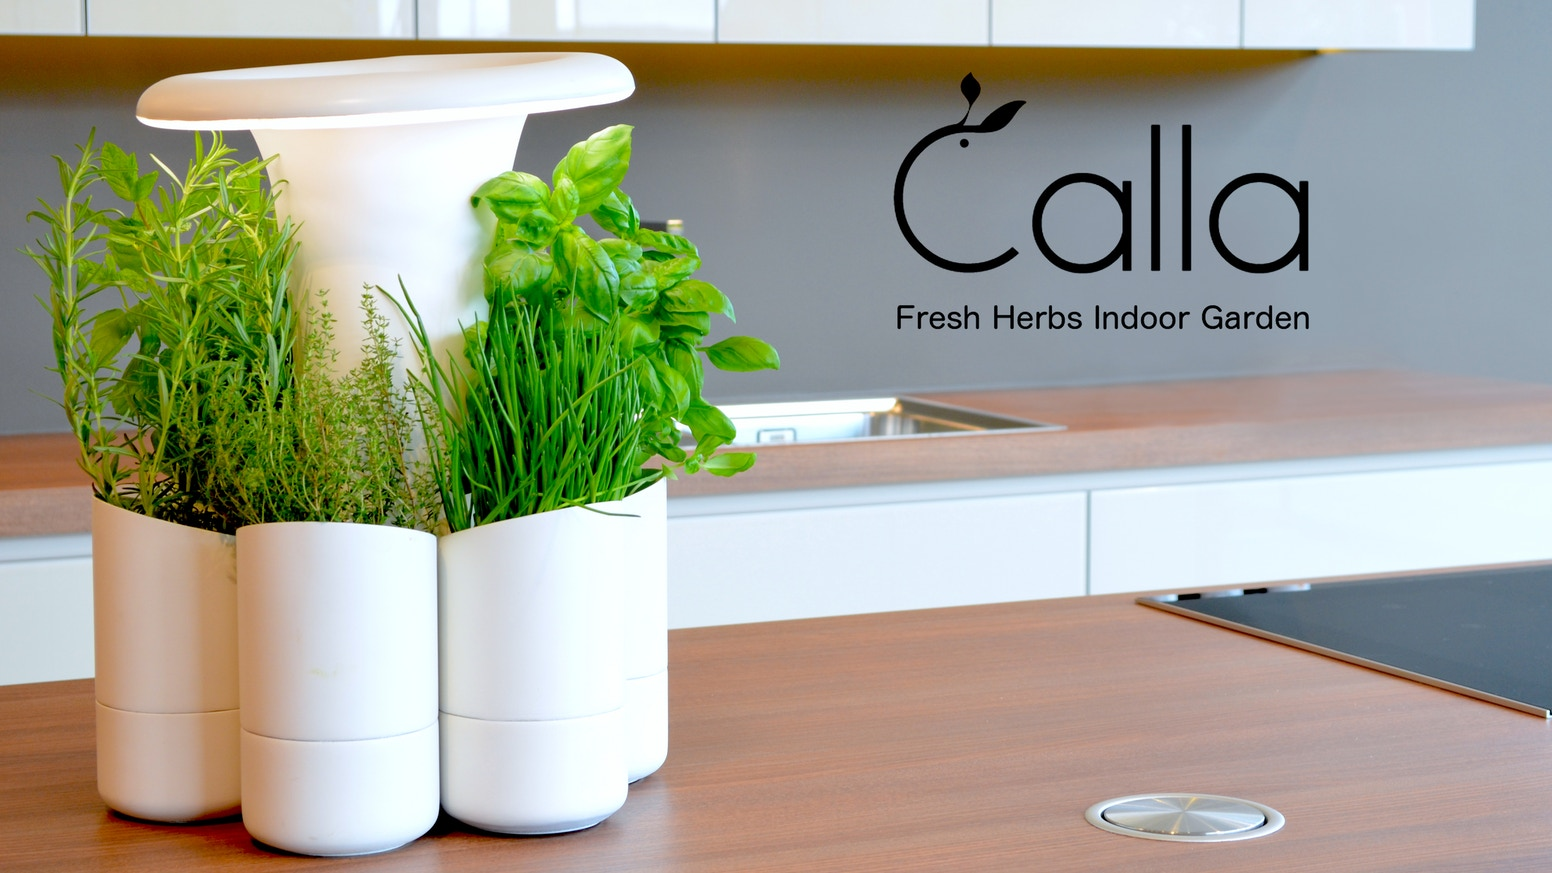 Keep your herbs healthy all year round and enjoy fresh and creative cooking with Calla.